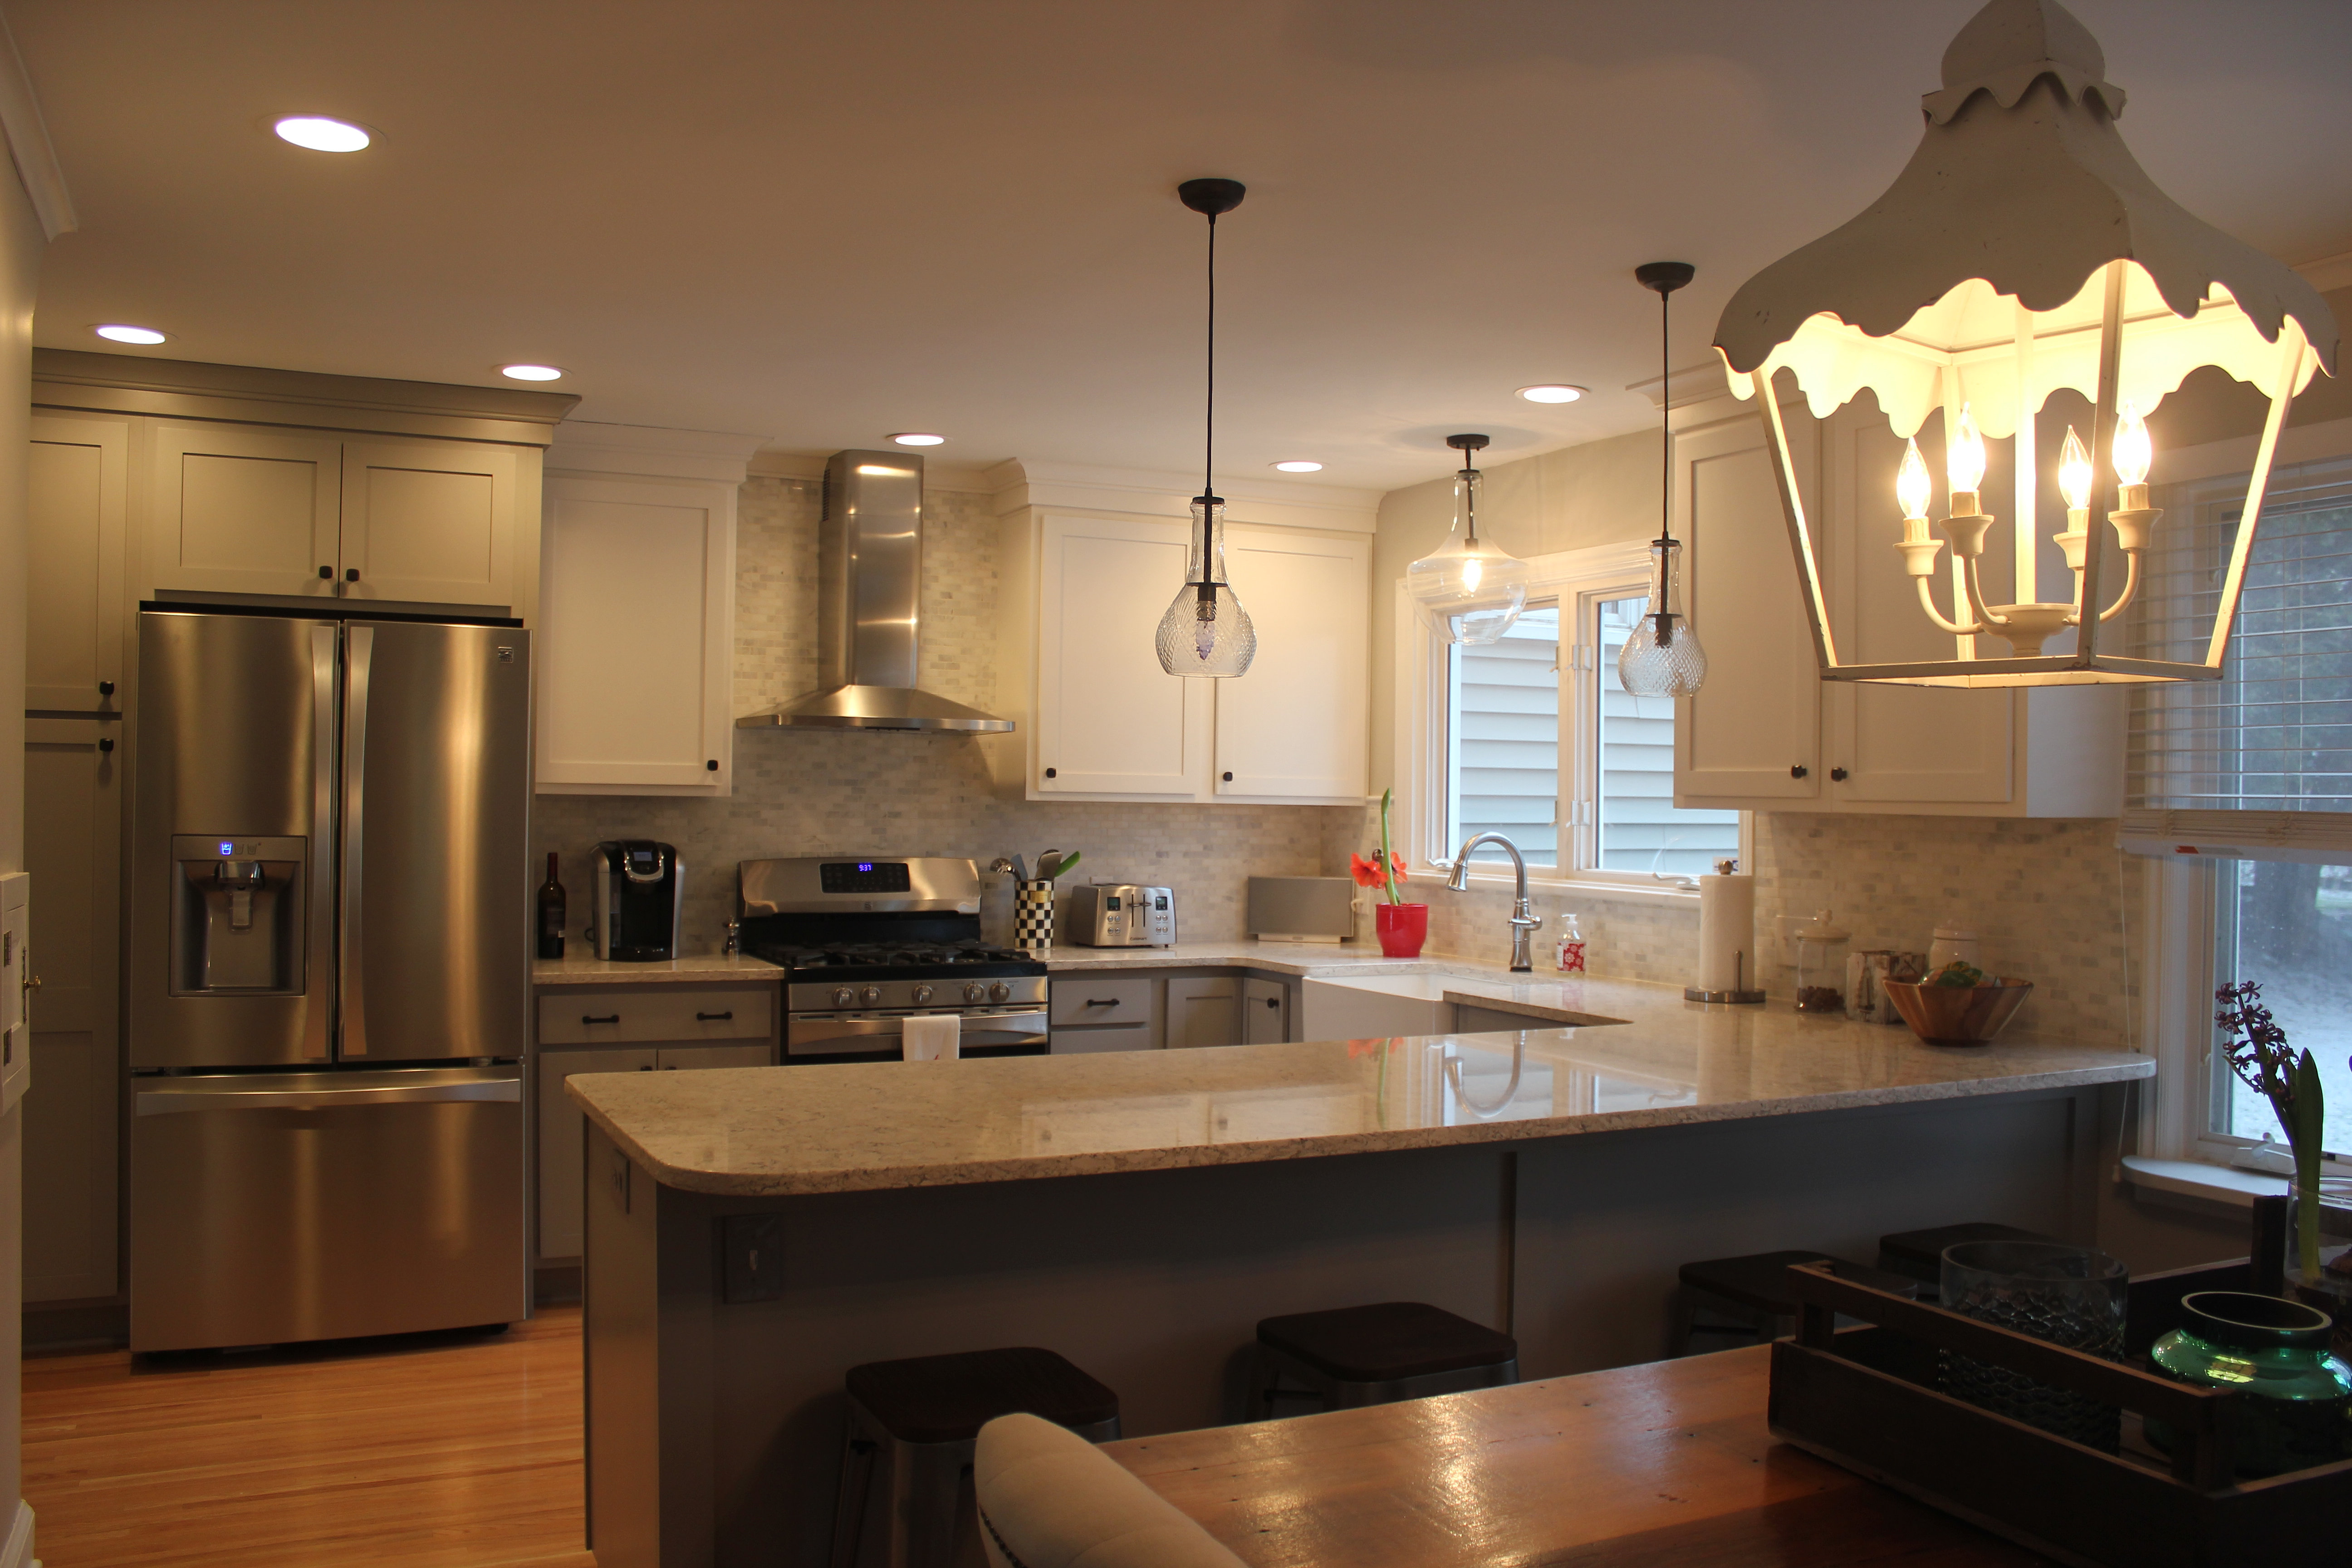 lightbox image kitchen remodeling rochester ny Award Winning Kitchen Remodeling in Rochester NY